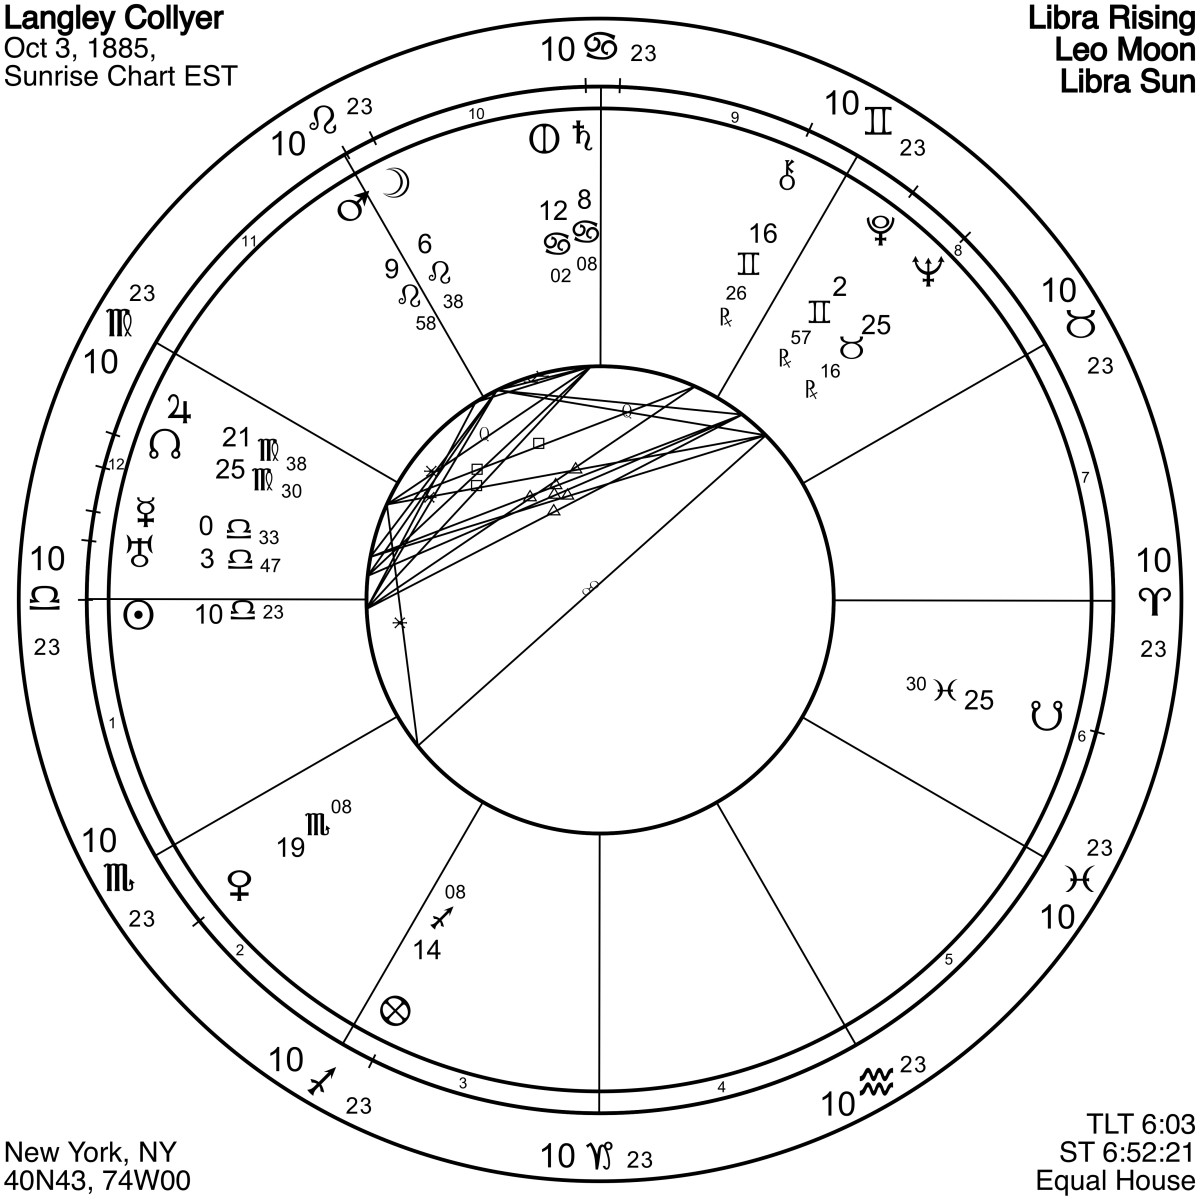 """Langley Collyer's chart, like his brother's, is very one-sided or focused. In Langley's case, focus morphed into obsession. Notice the hyperactive Moon-Mars conjunction (at the 11 o'clock position) commanding the """"attention"""" of all other planets."""